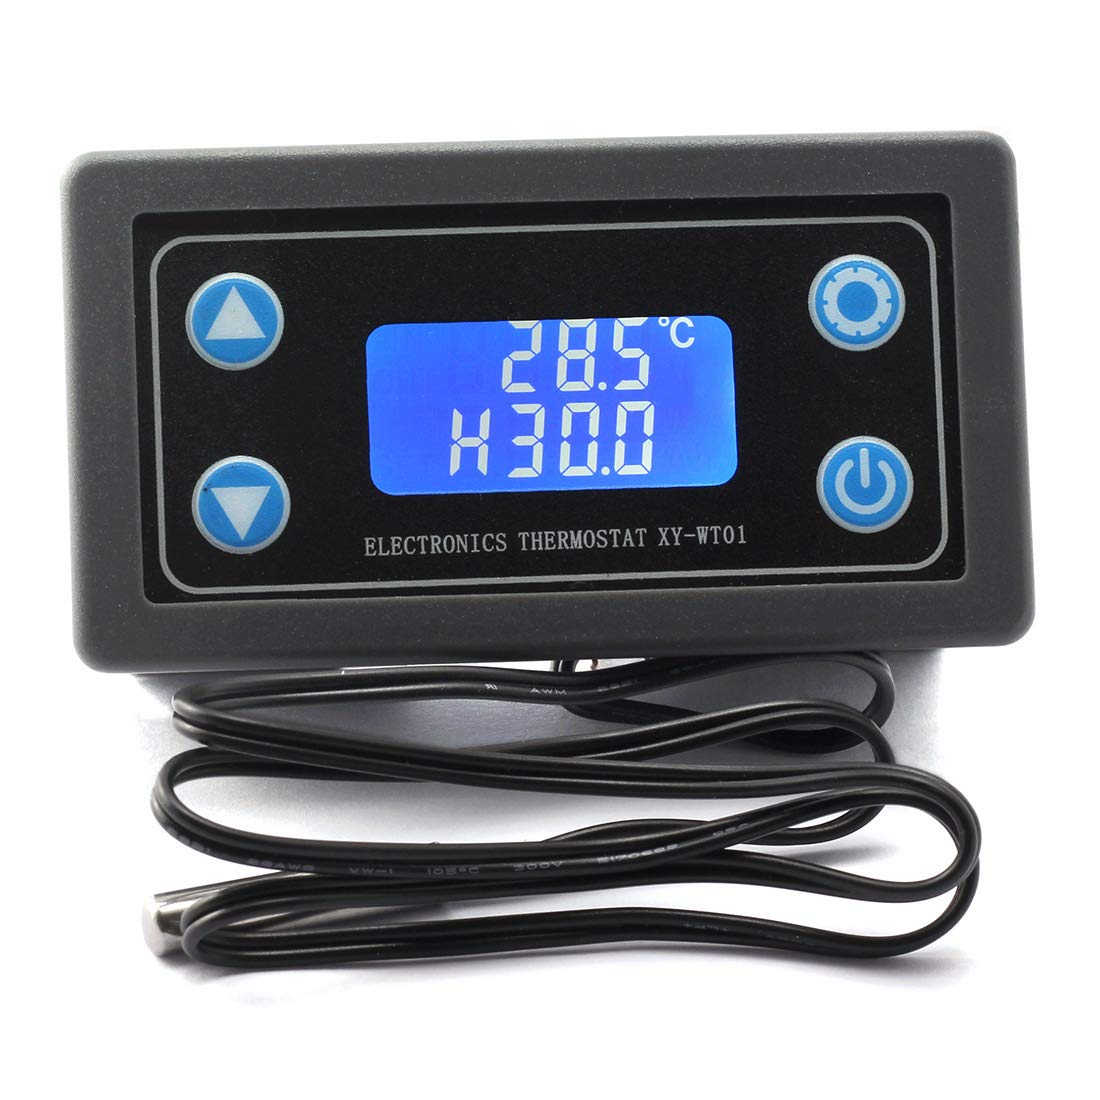 DZS Elec DC 6.0-30V Digital Temperature Controller Switch 12V 24V -50 to 110 Celsius LCD Temperature Monitoring Instrument Heating/Cooling Auto Switch AC 220V 10A High Temperature Buzzes Alarm